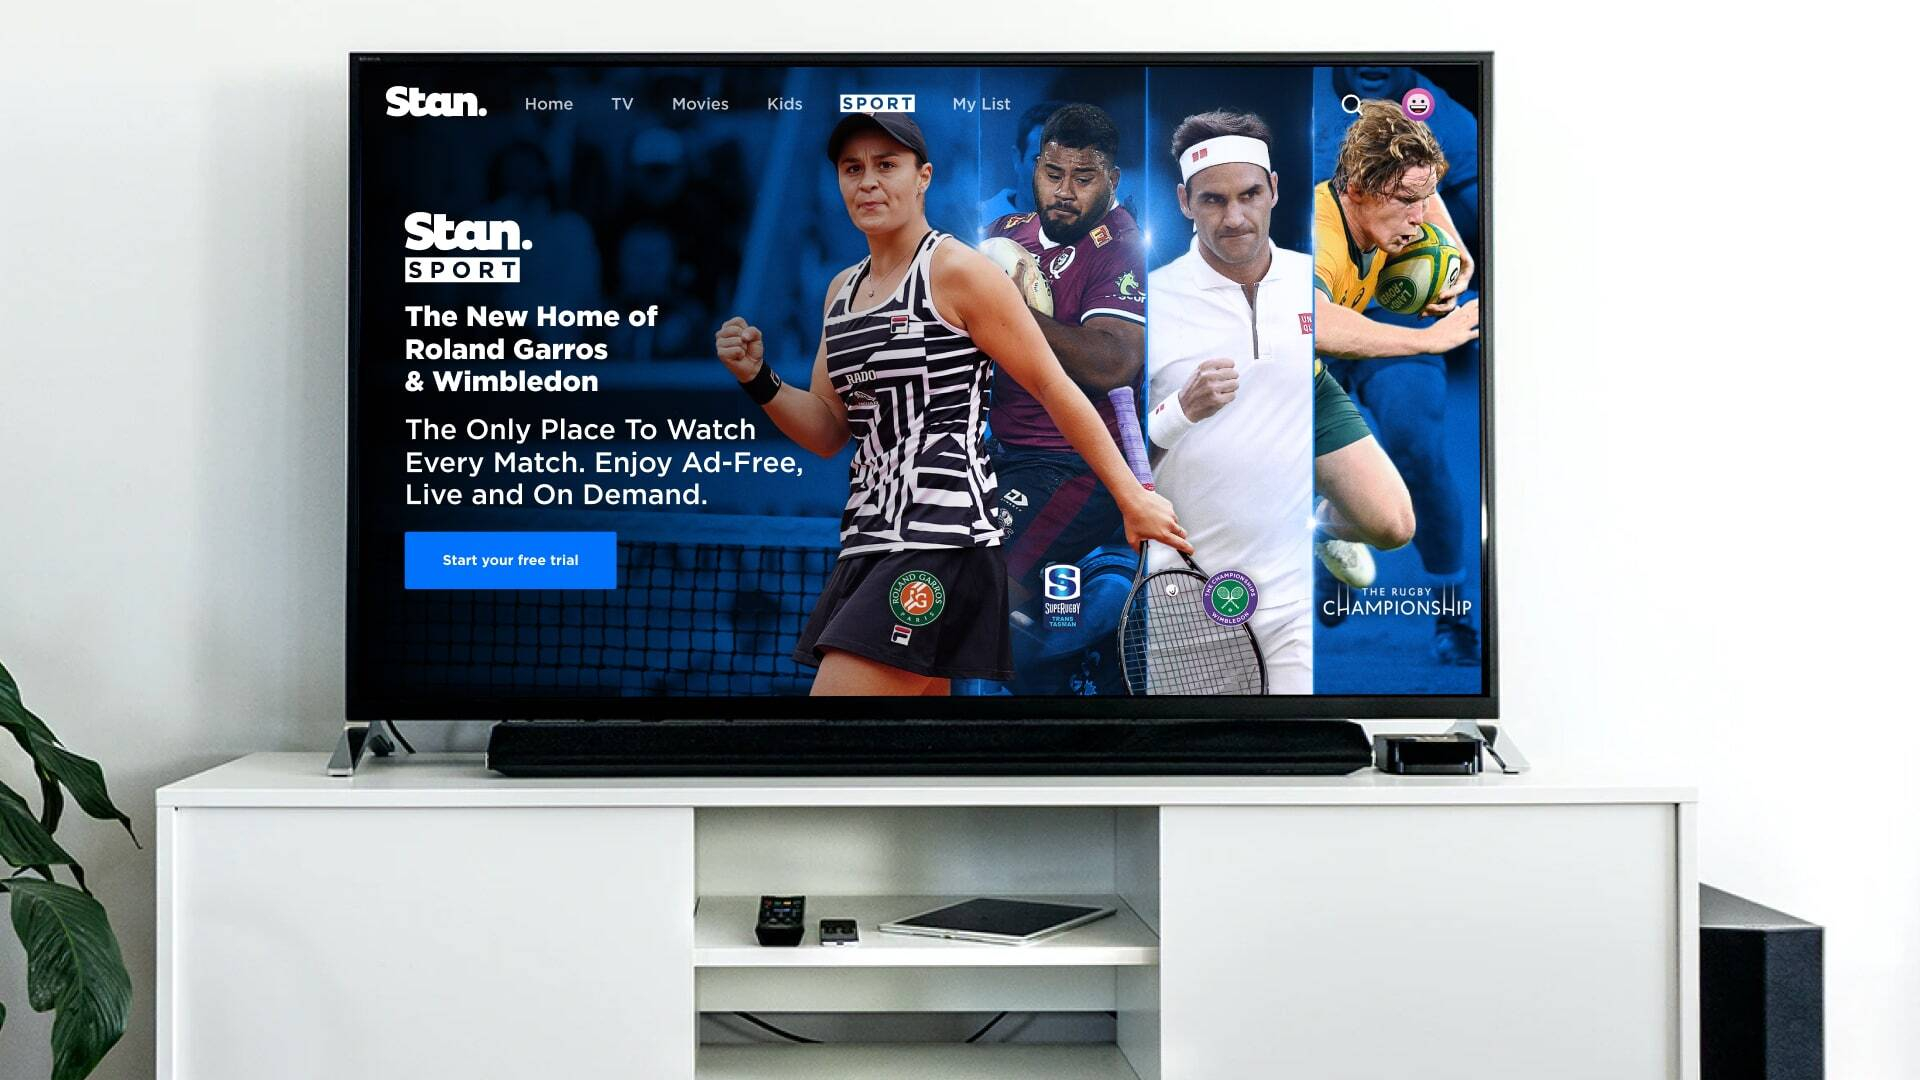 Stan Sport is the Home of Rugby, Roland Garros & Wimbledon